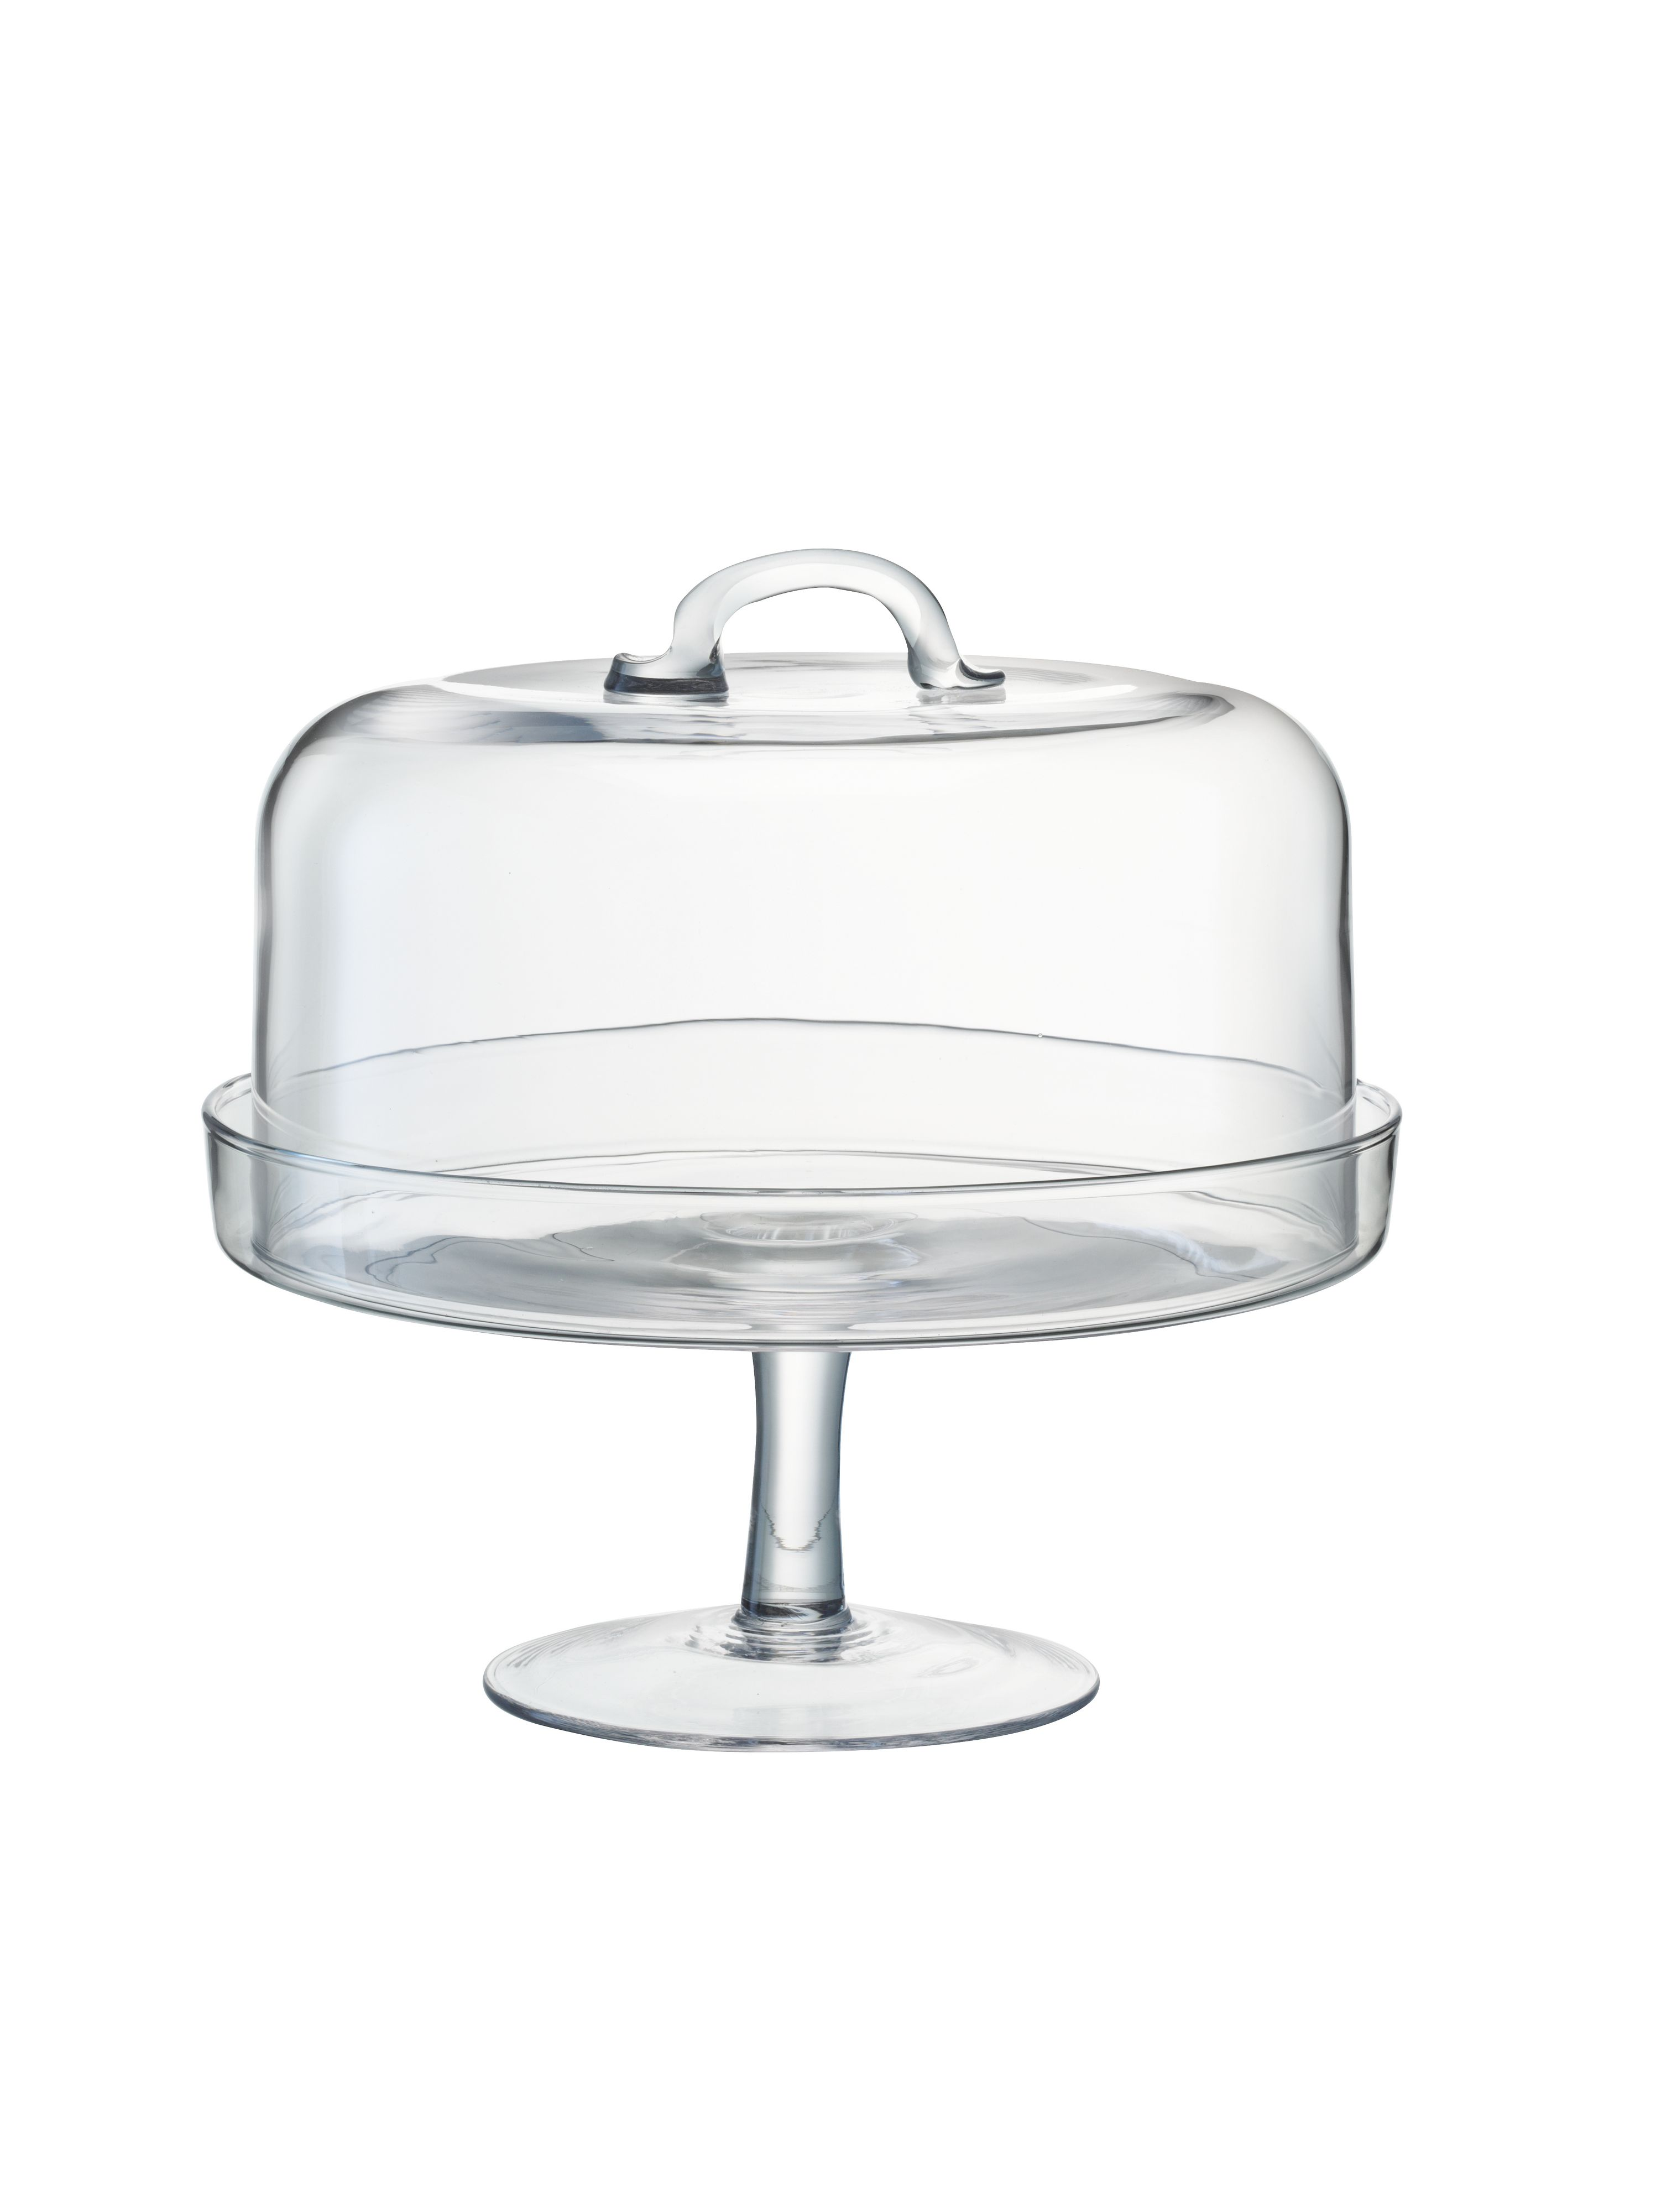 Serve cakestand & dome 24cm